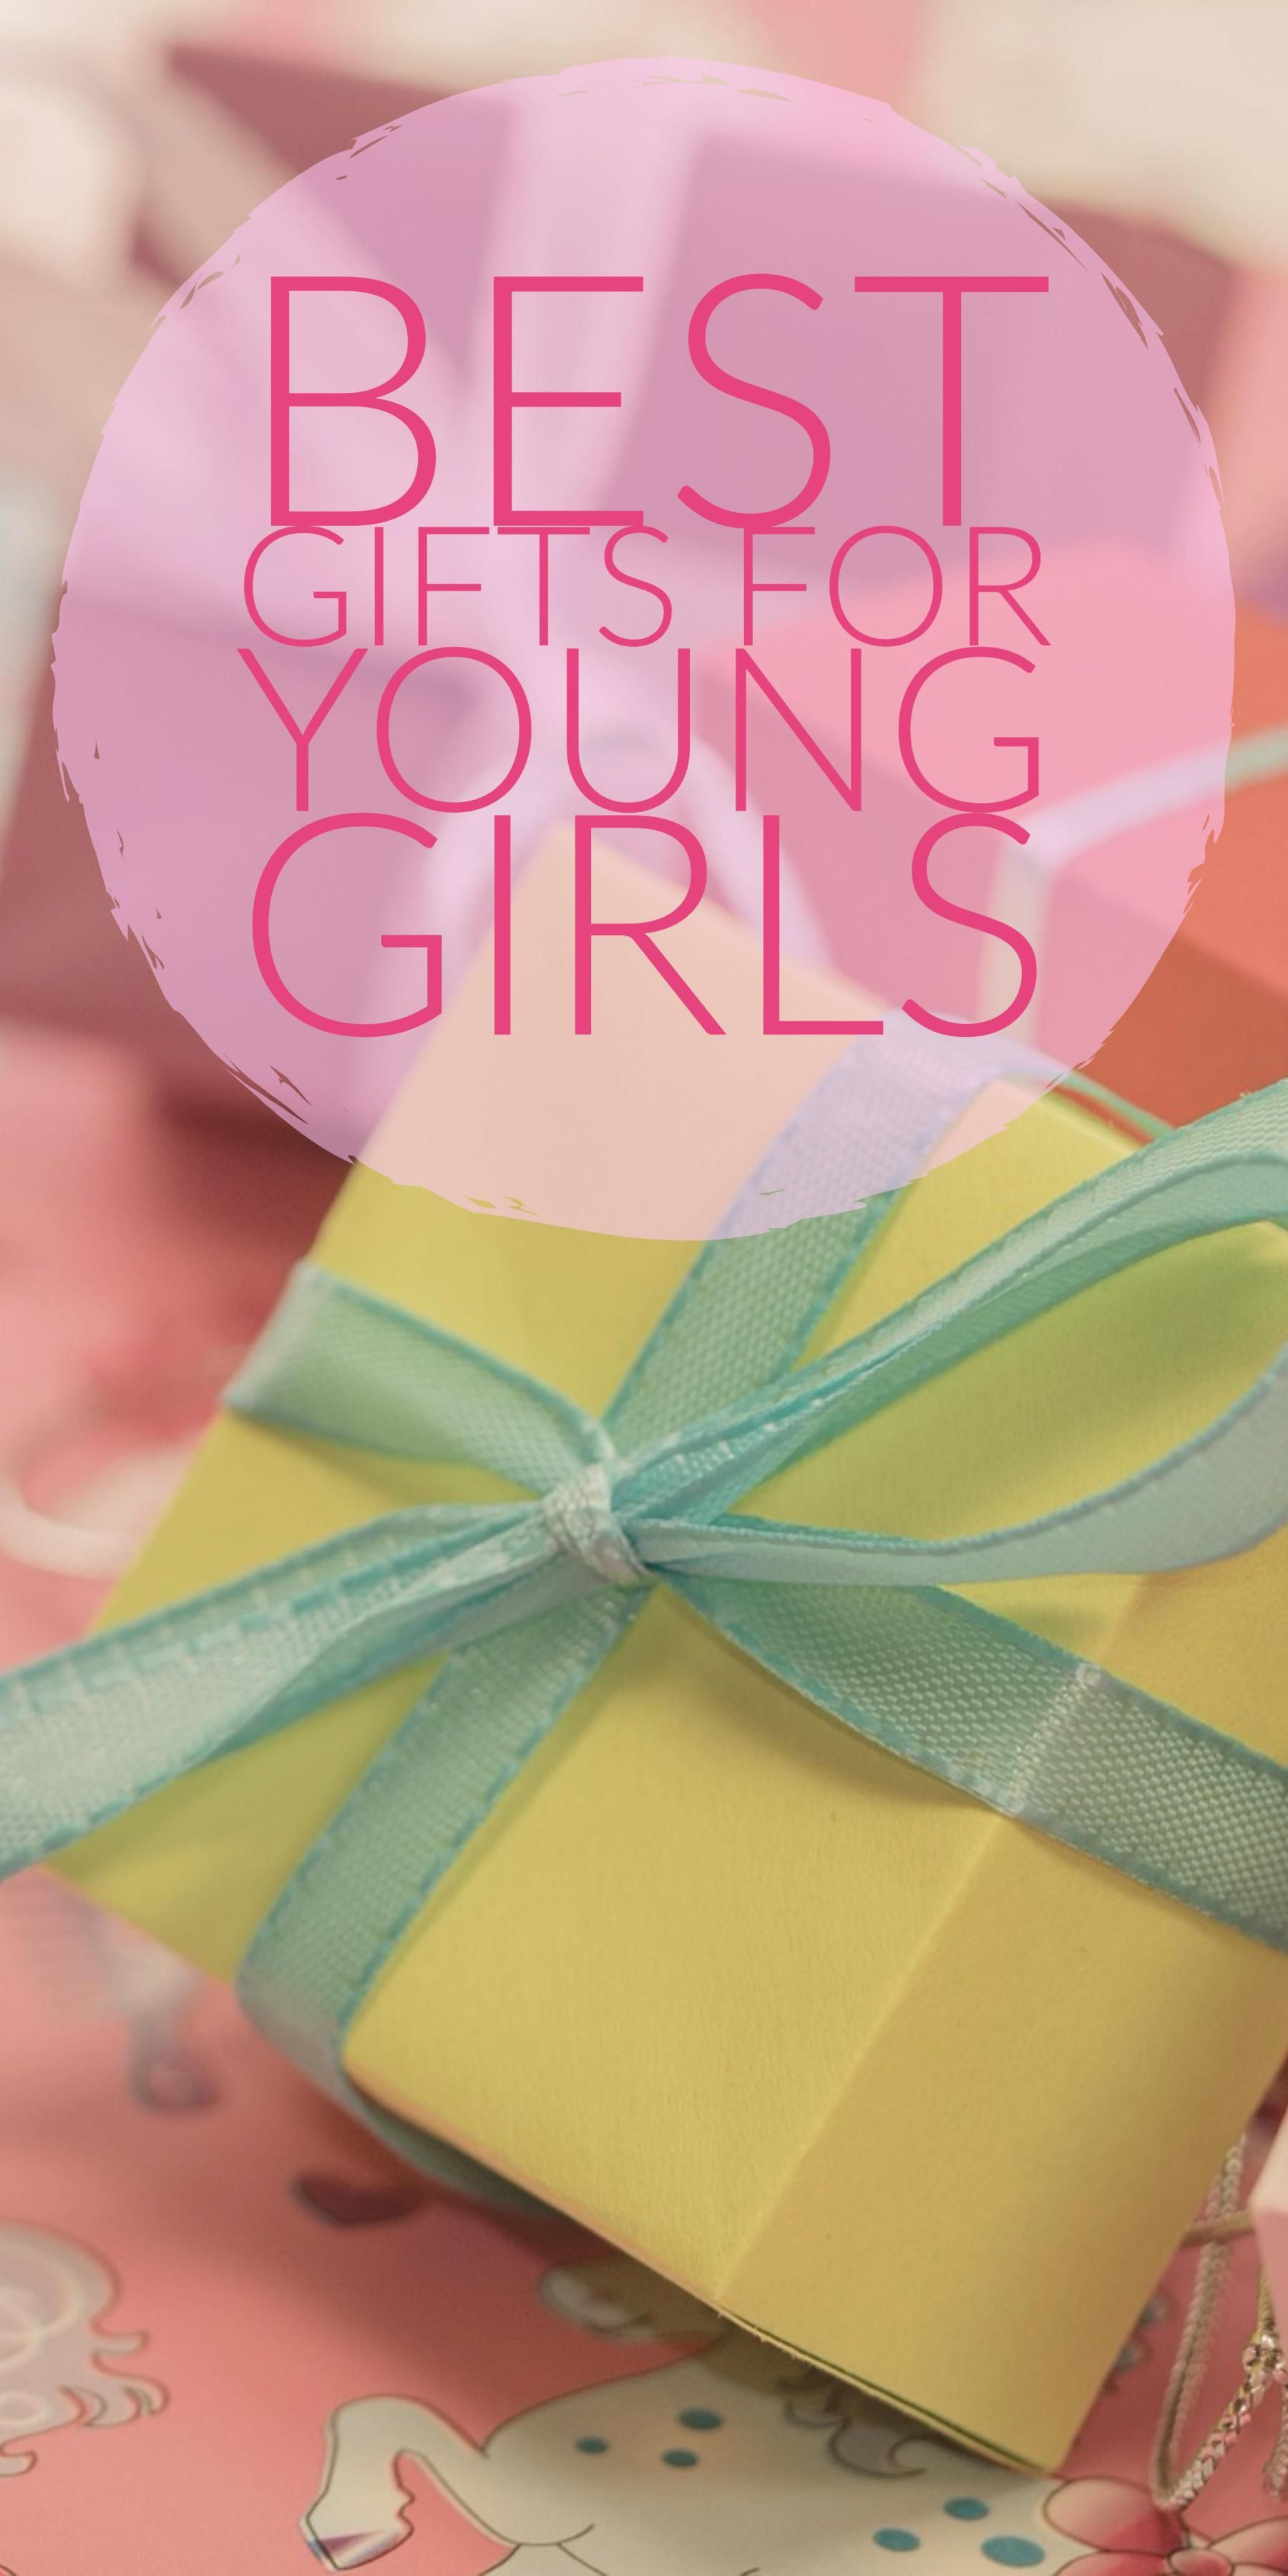 Birthday Gift Guide Birthday Party Gifts For Girls Birthday Gifts